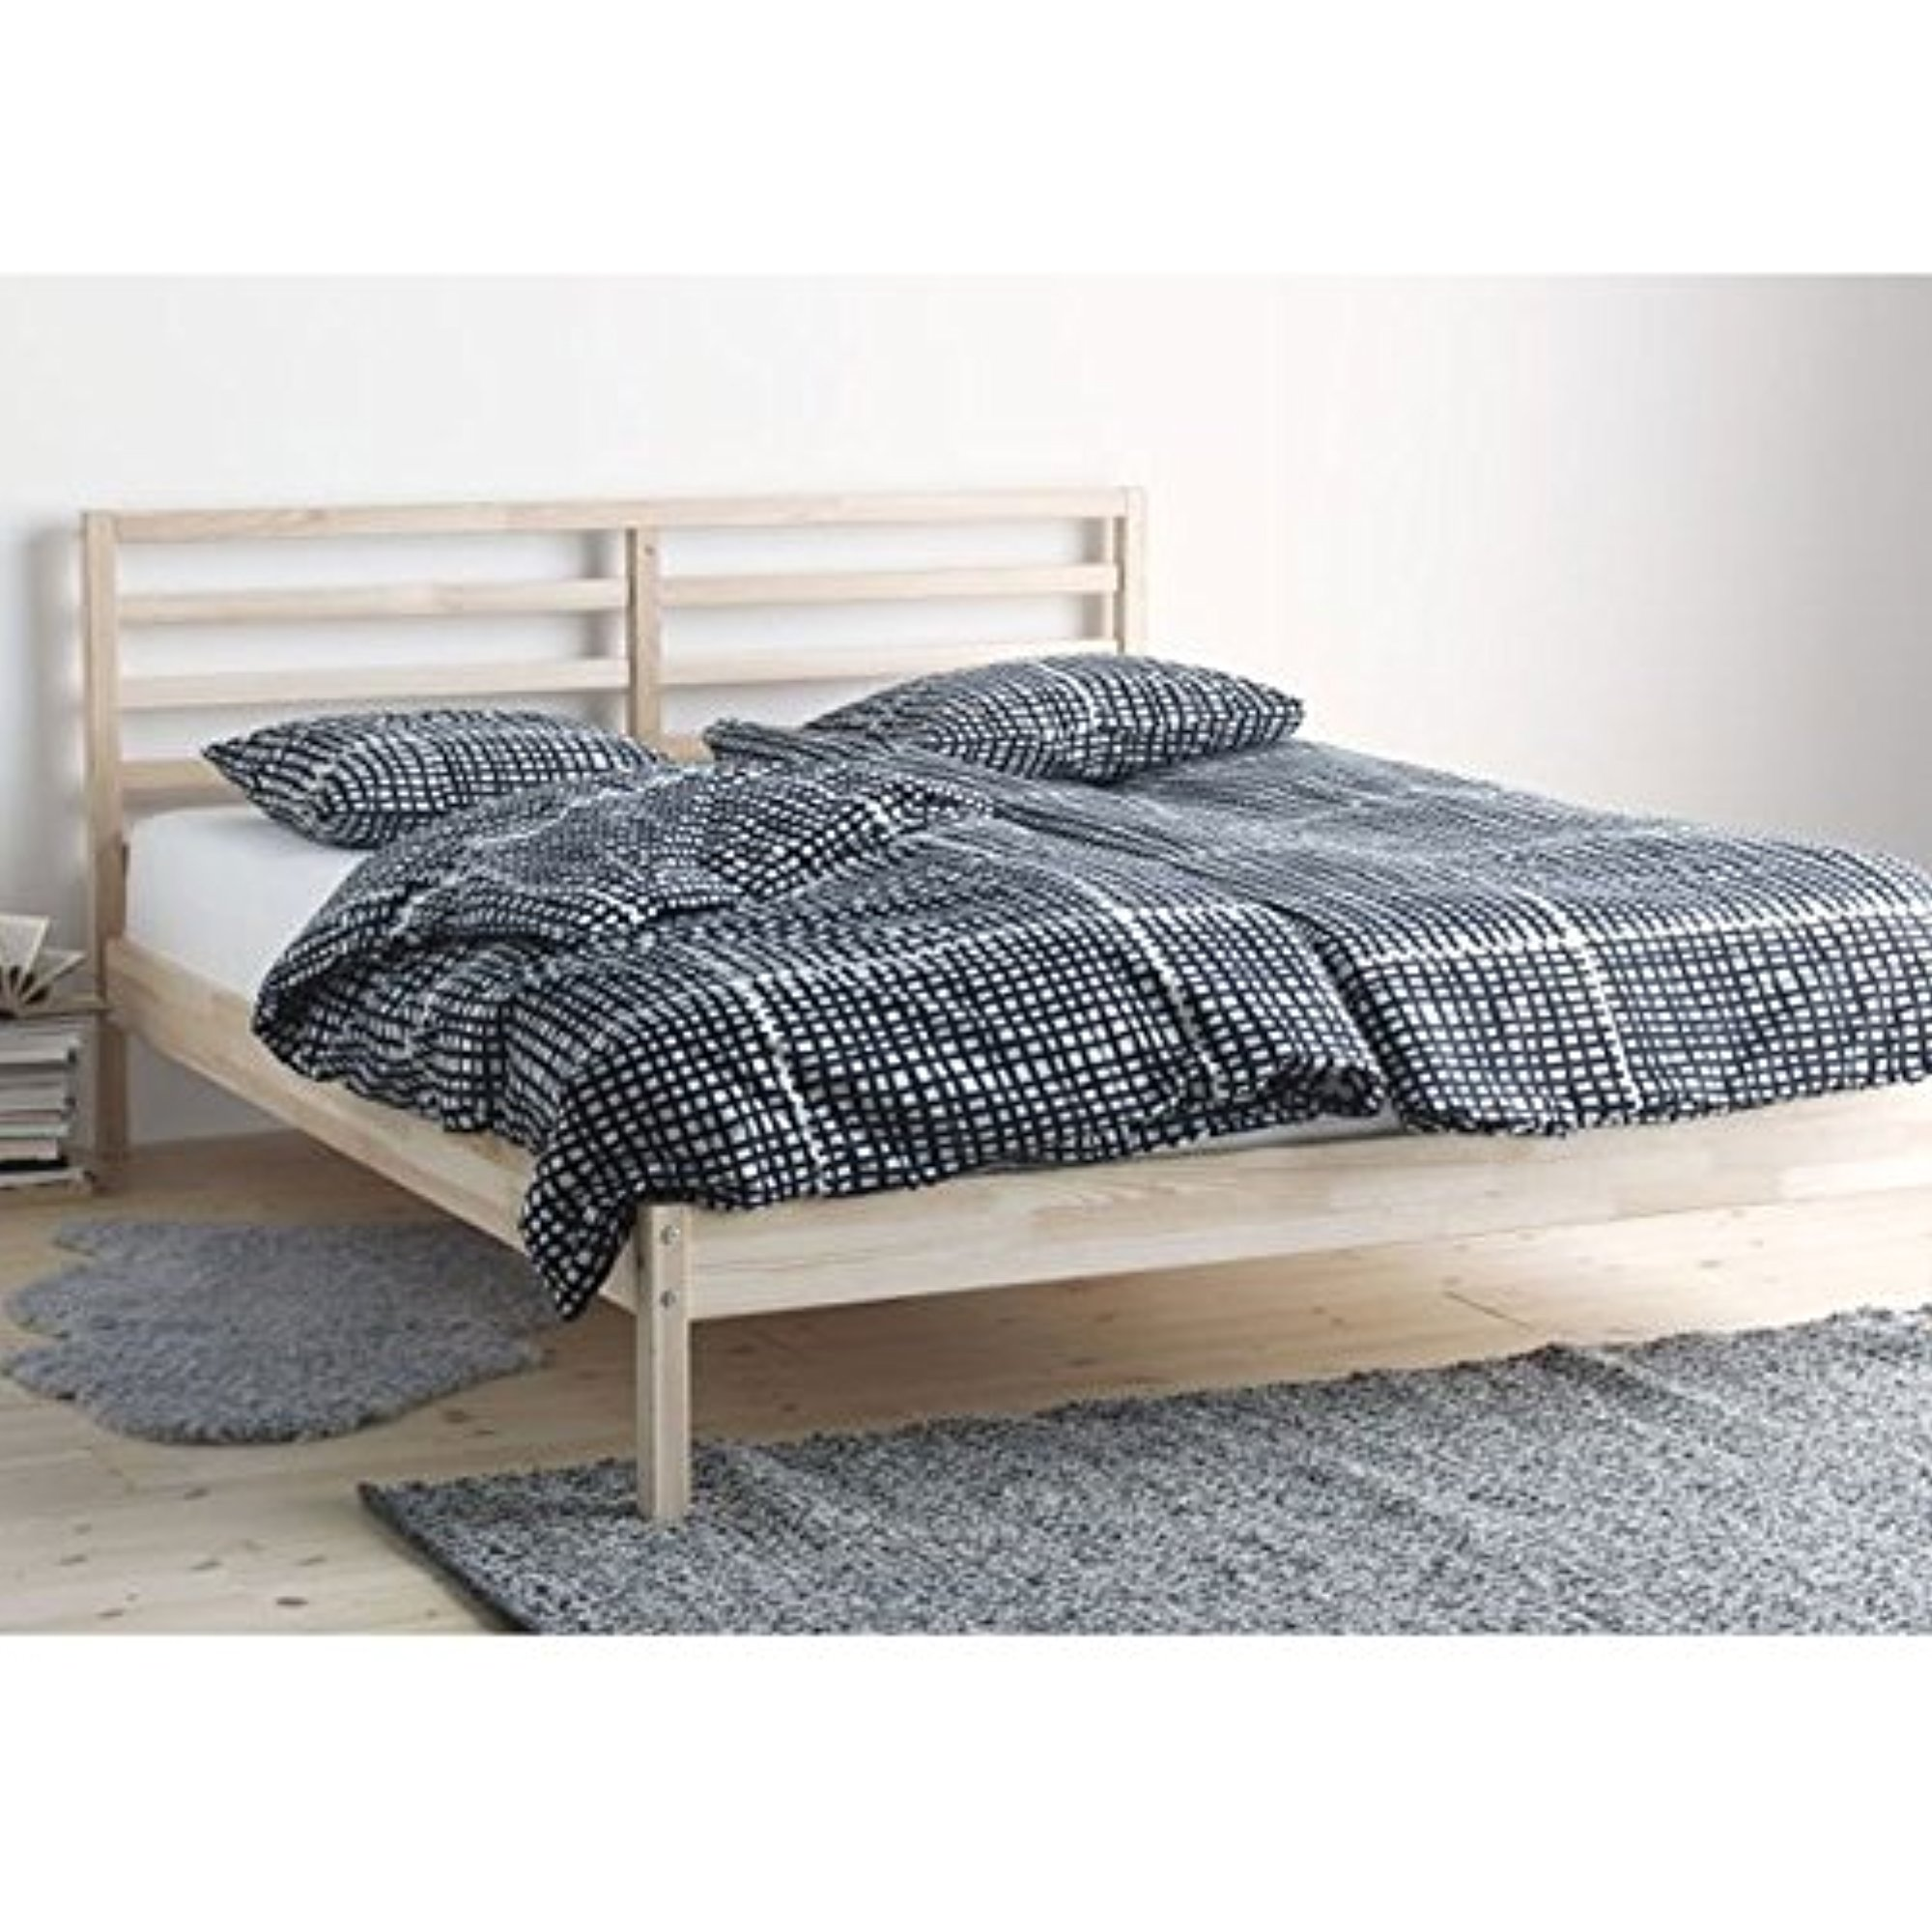 Ikea Tarva Full Size Bed Frame Solid Pine Wood Brown 183838 1125 22 Walmart Com Walmart Com